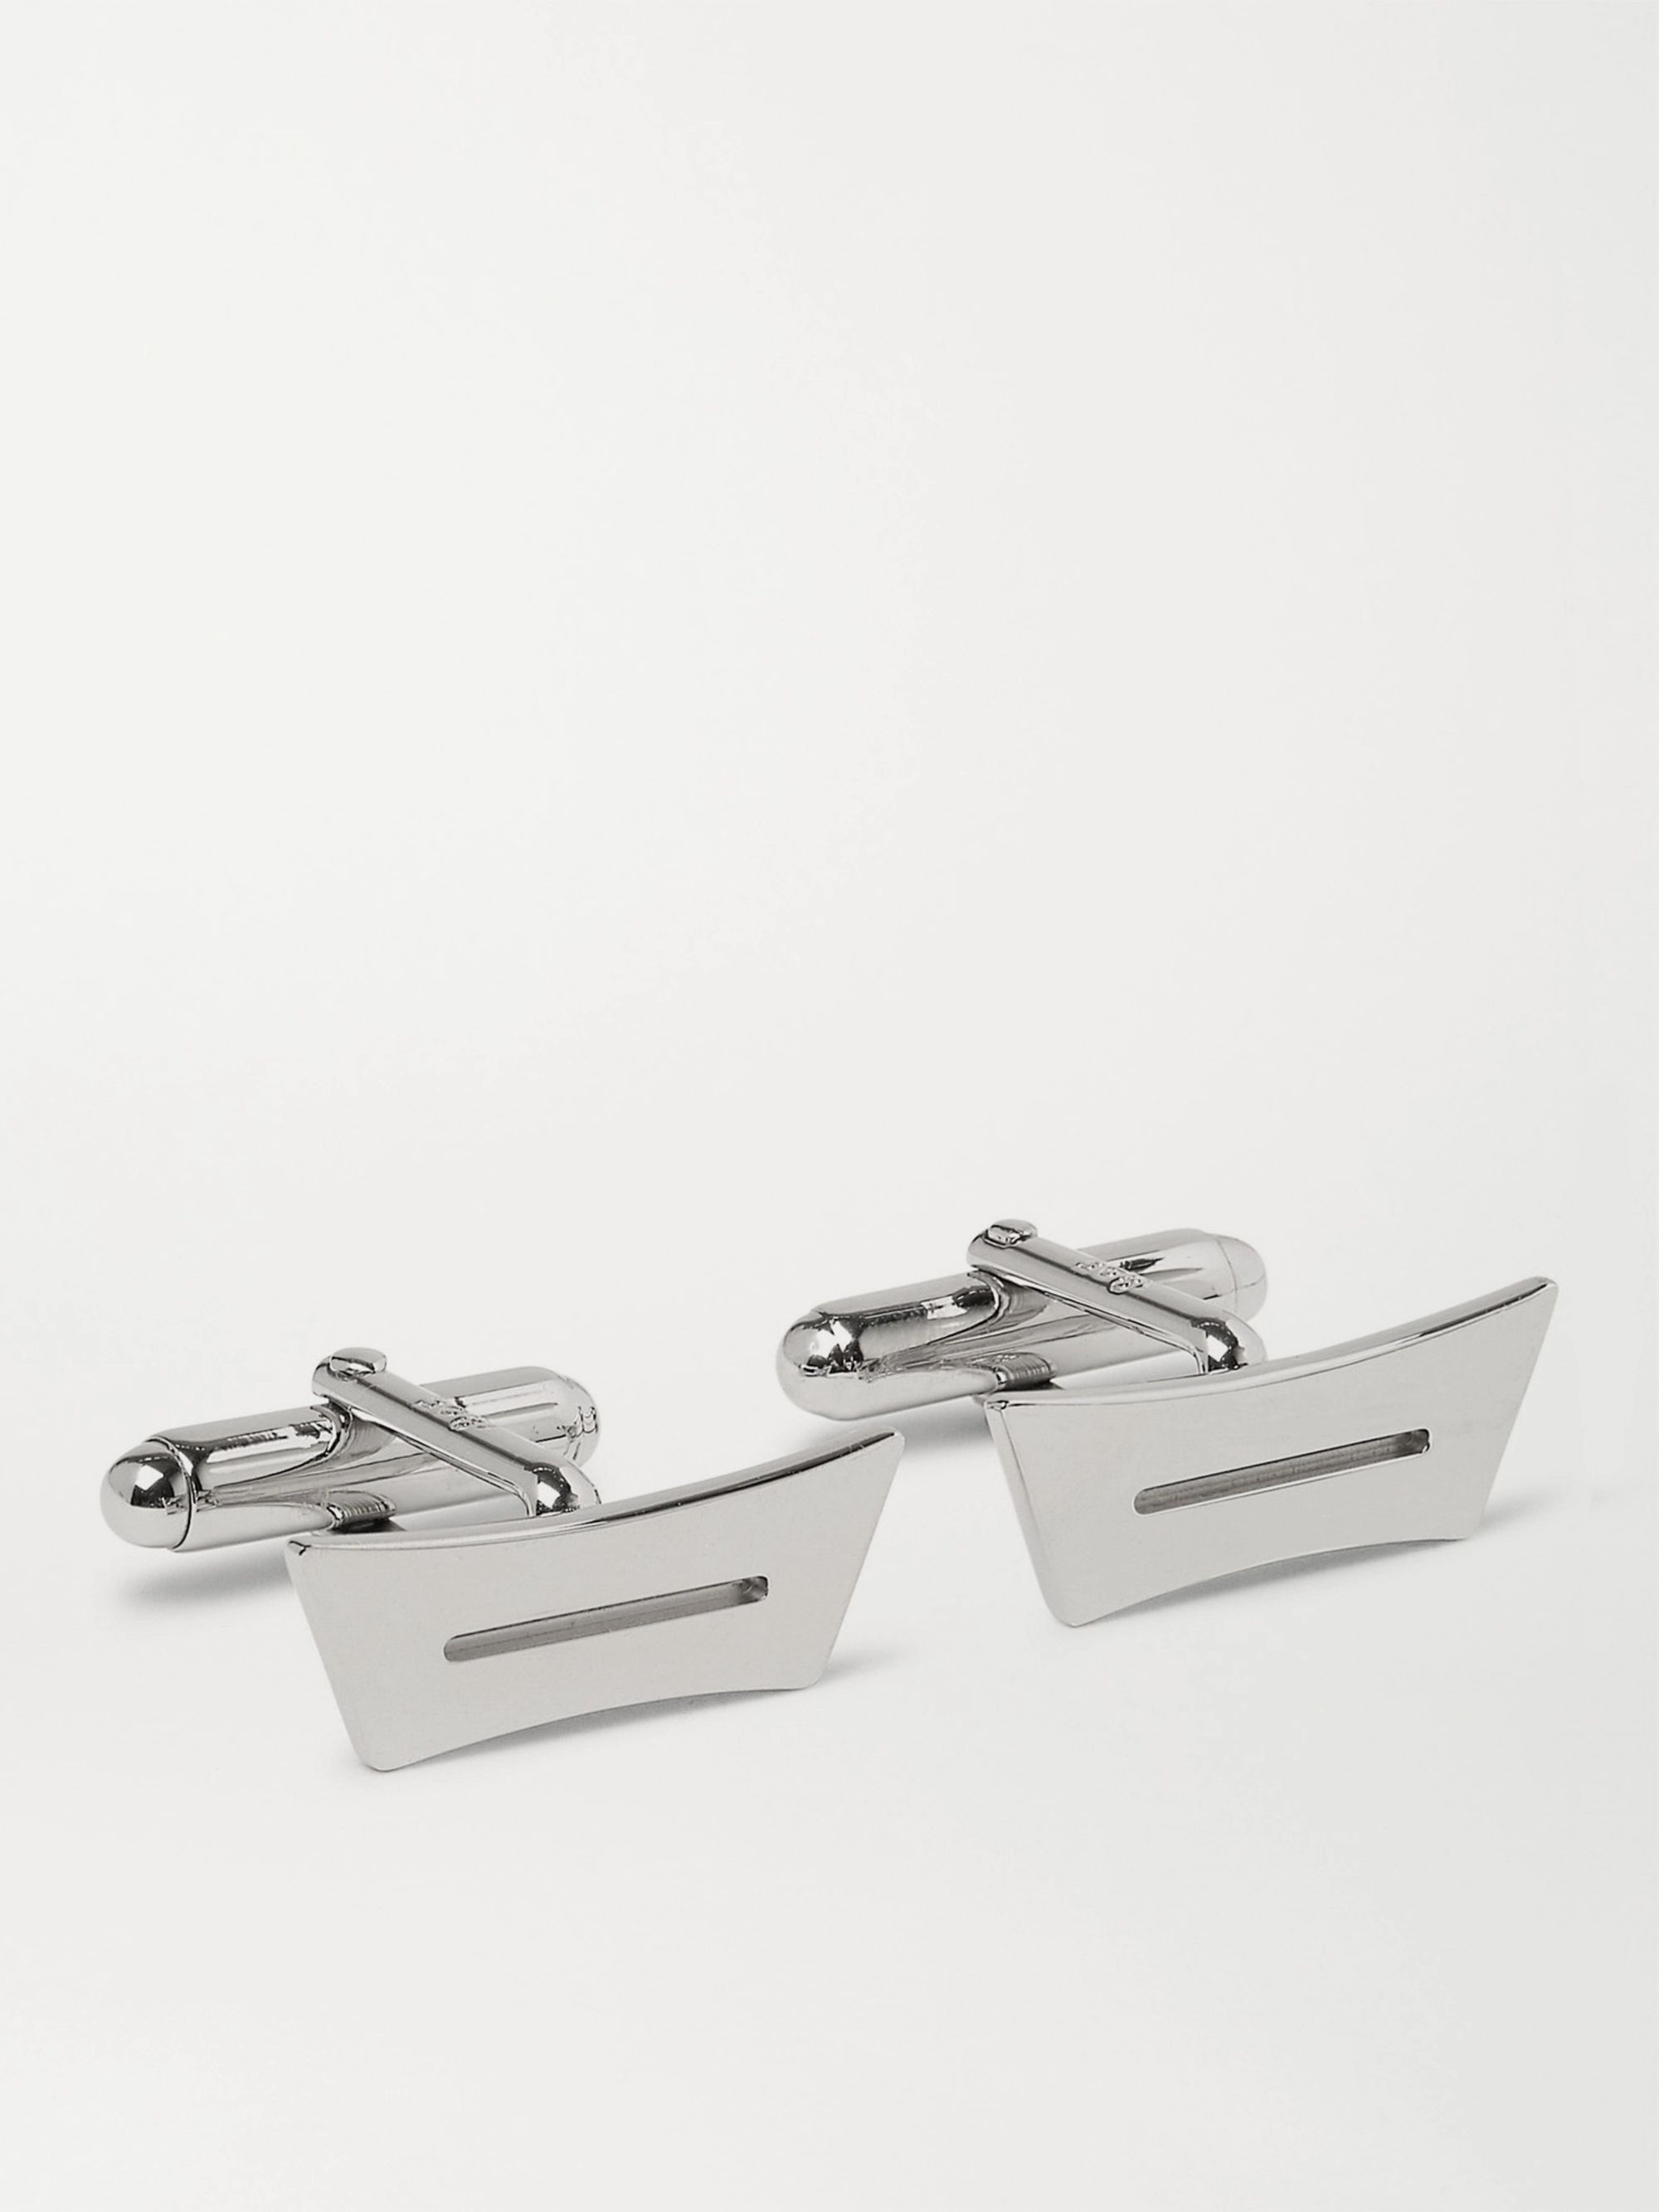 Berluti Andy Palladium-Plated Cufflinks